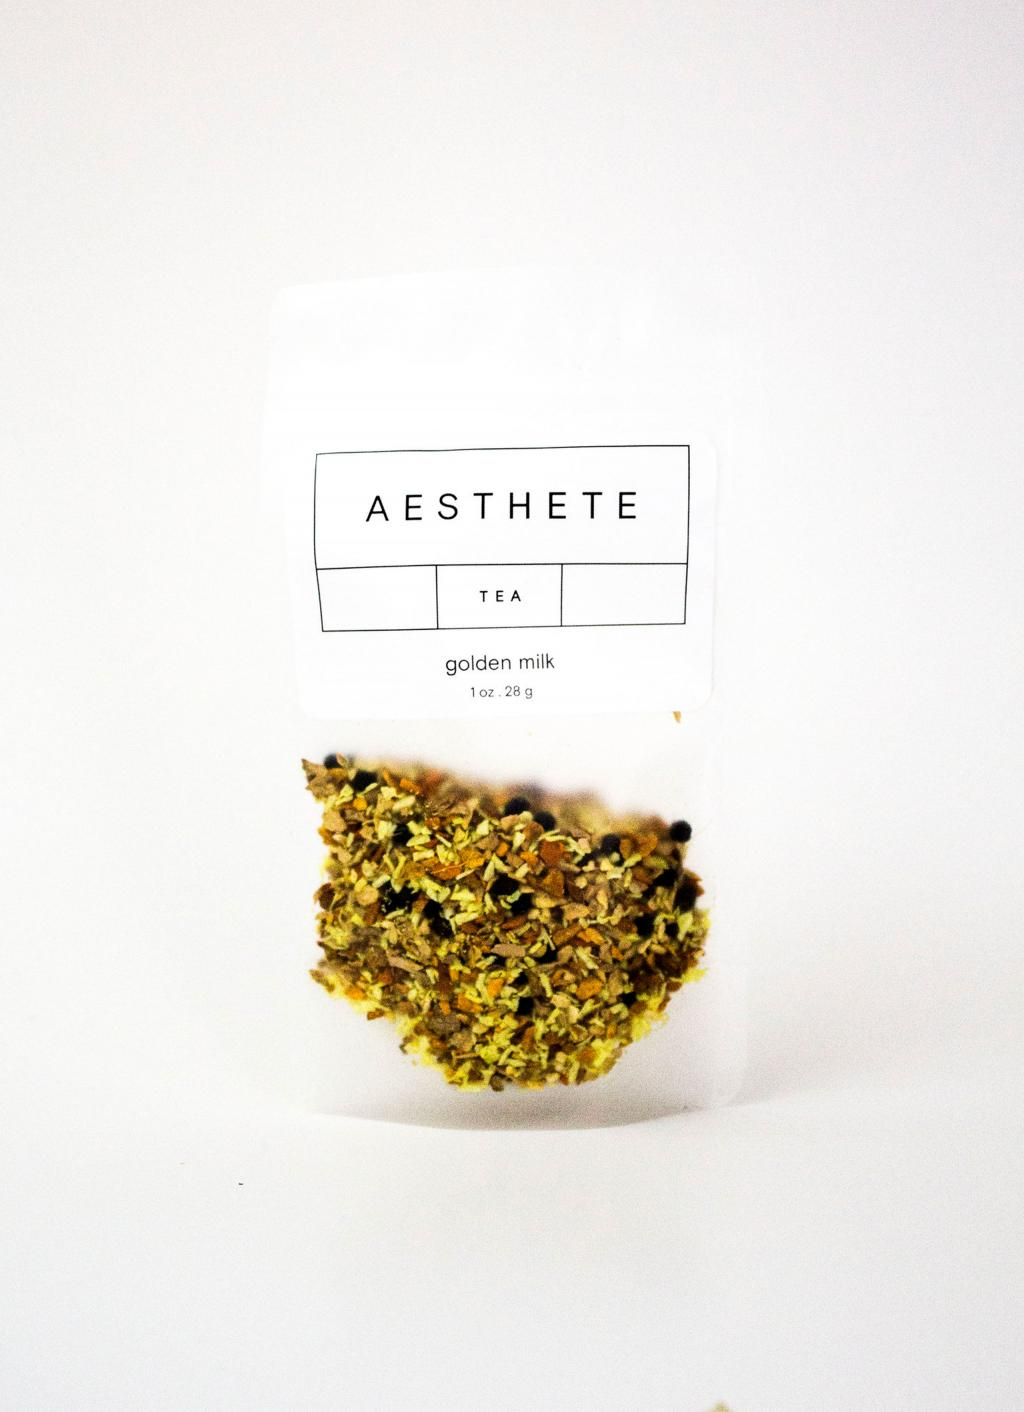 Aesthete Tea - Organic and Fair Trade Tea - Golden Milk